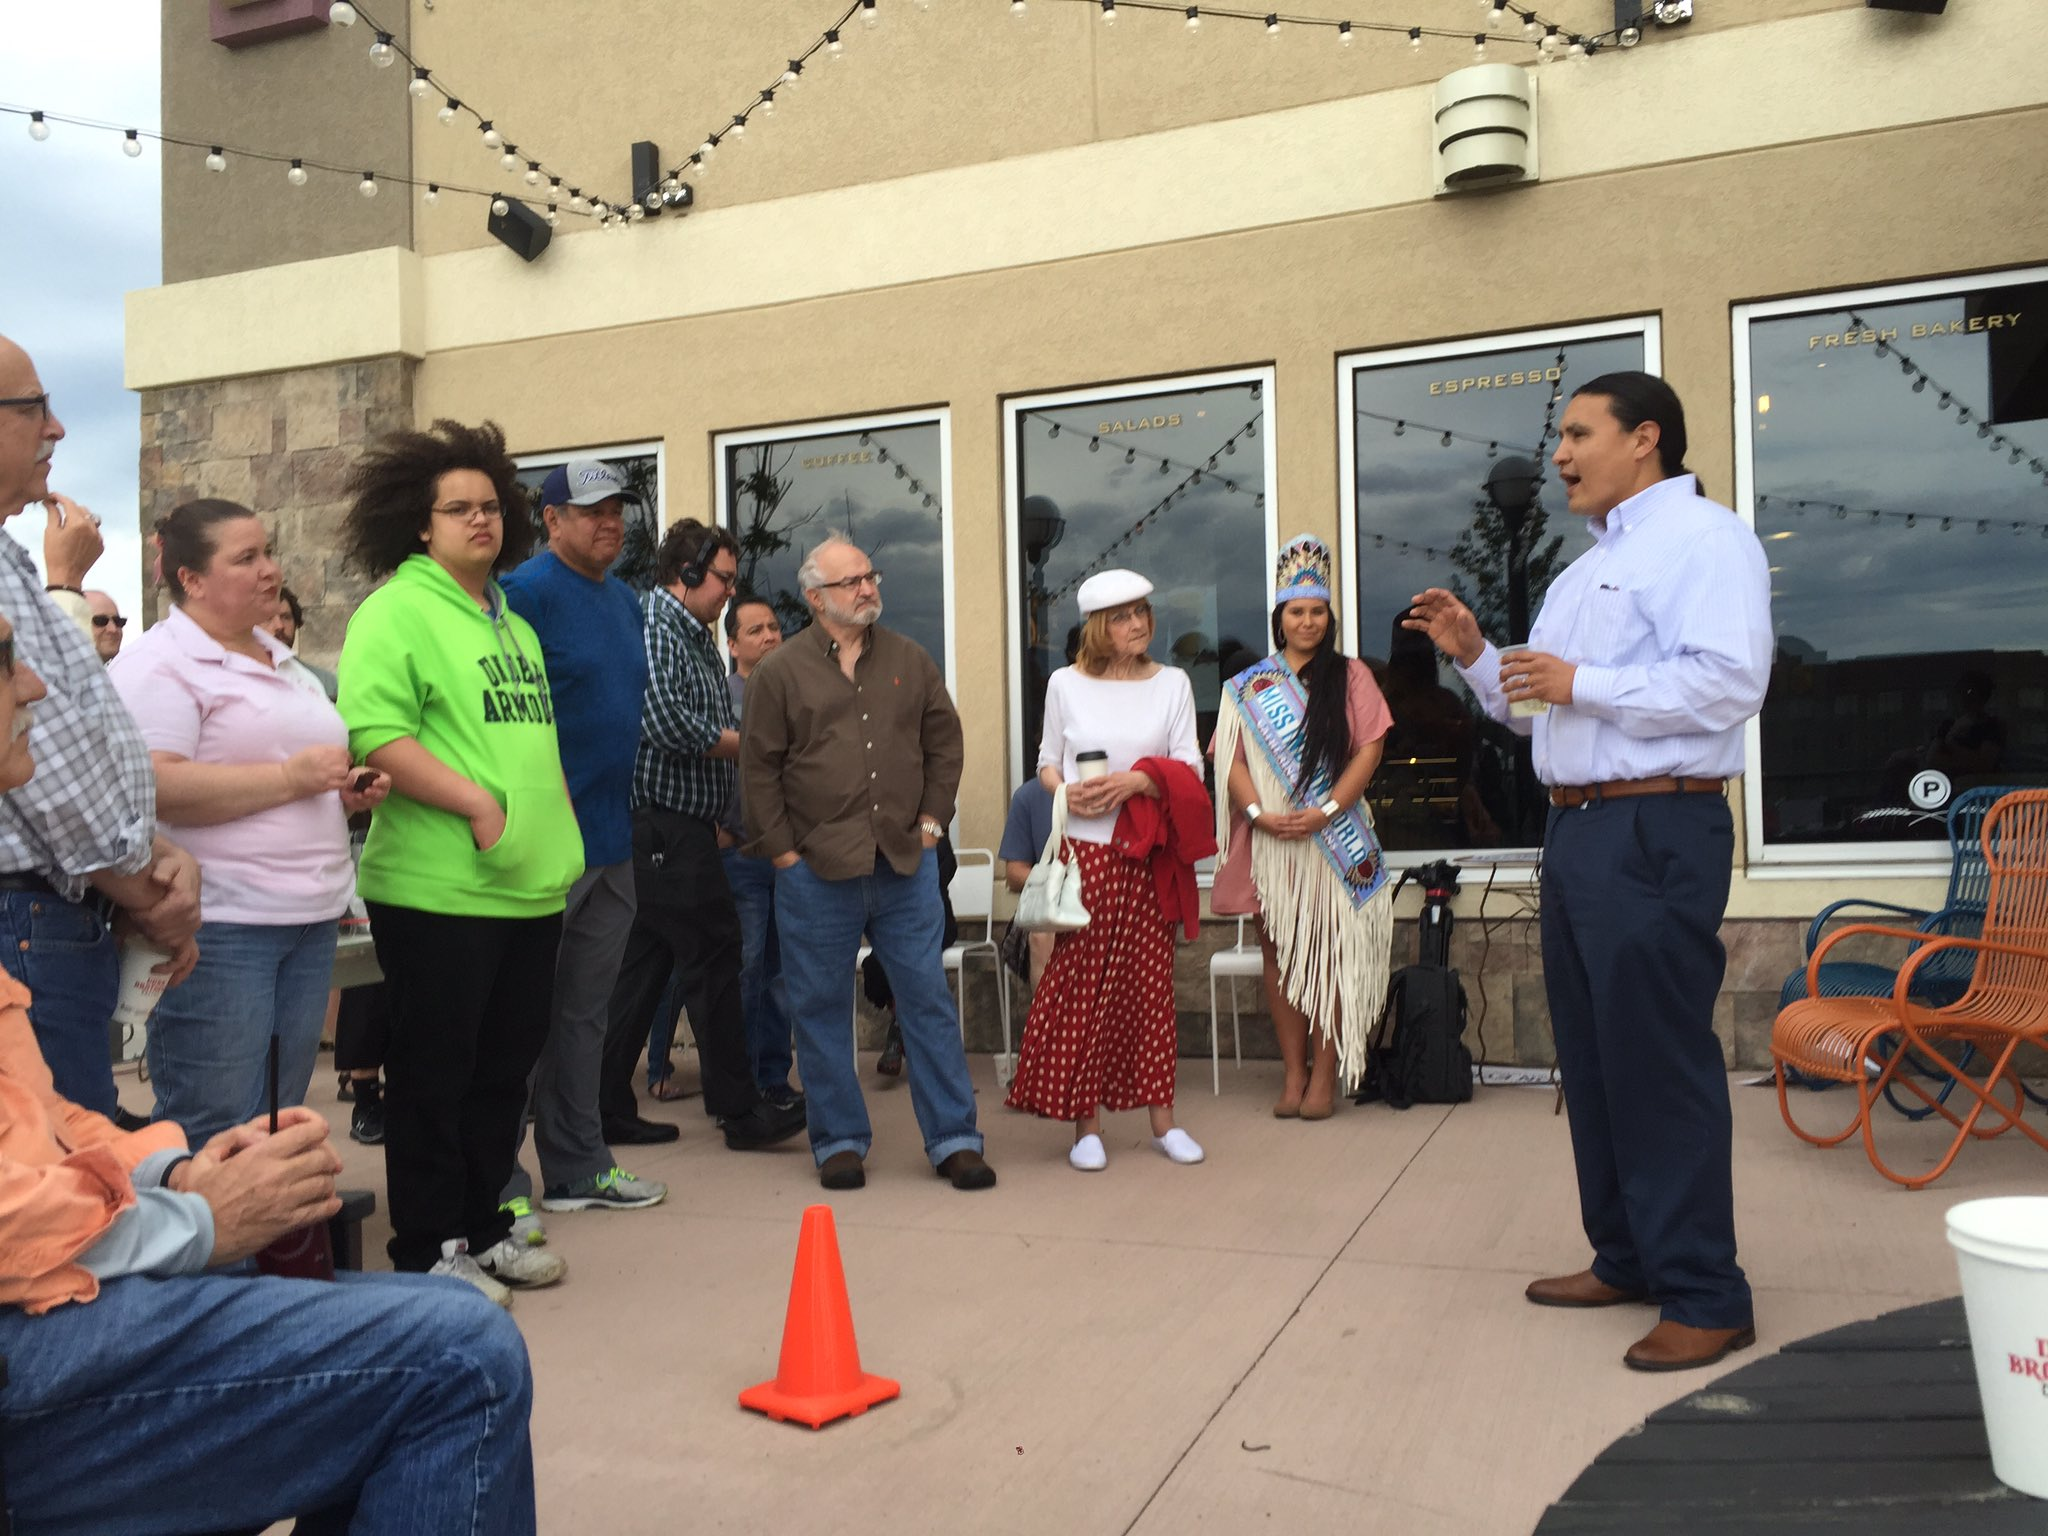 Mark Trahant: Chase Iron Eyes shakes up Congressional campaign